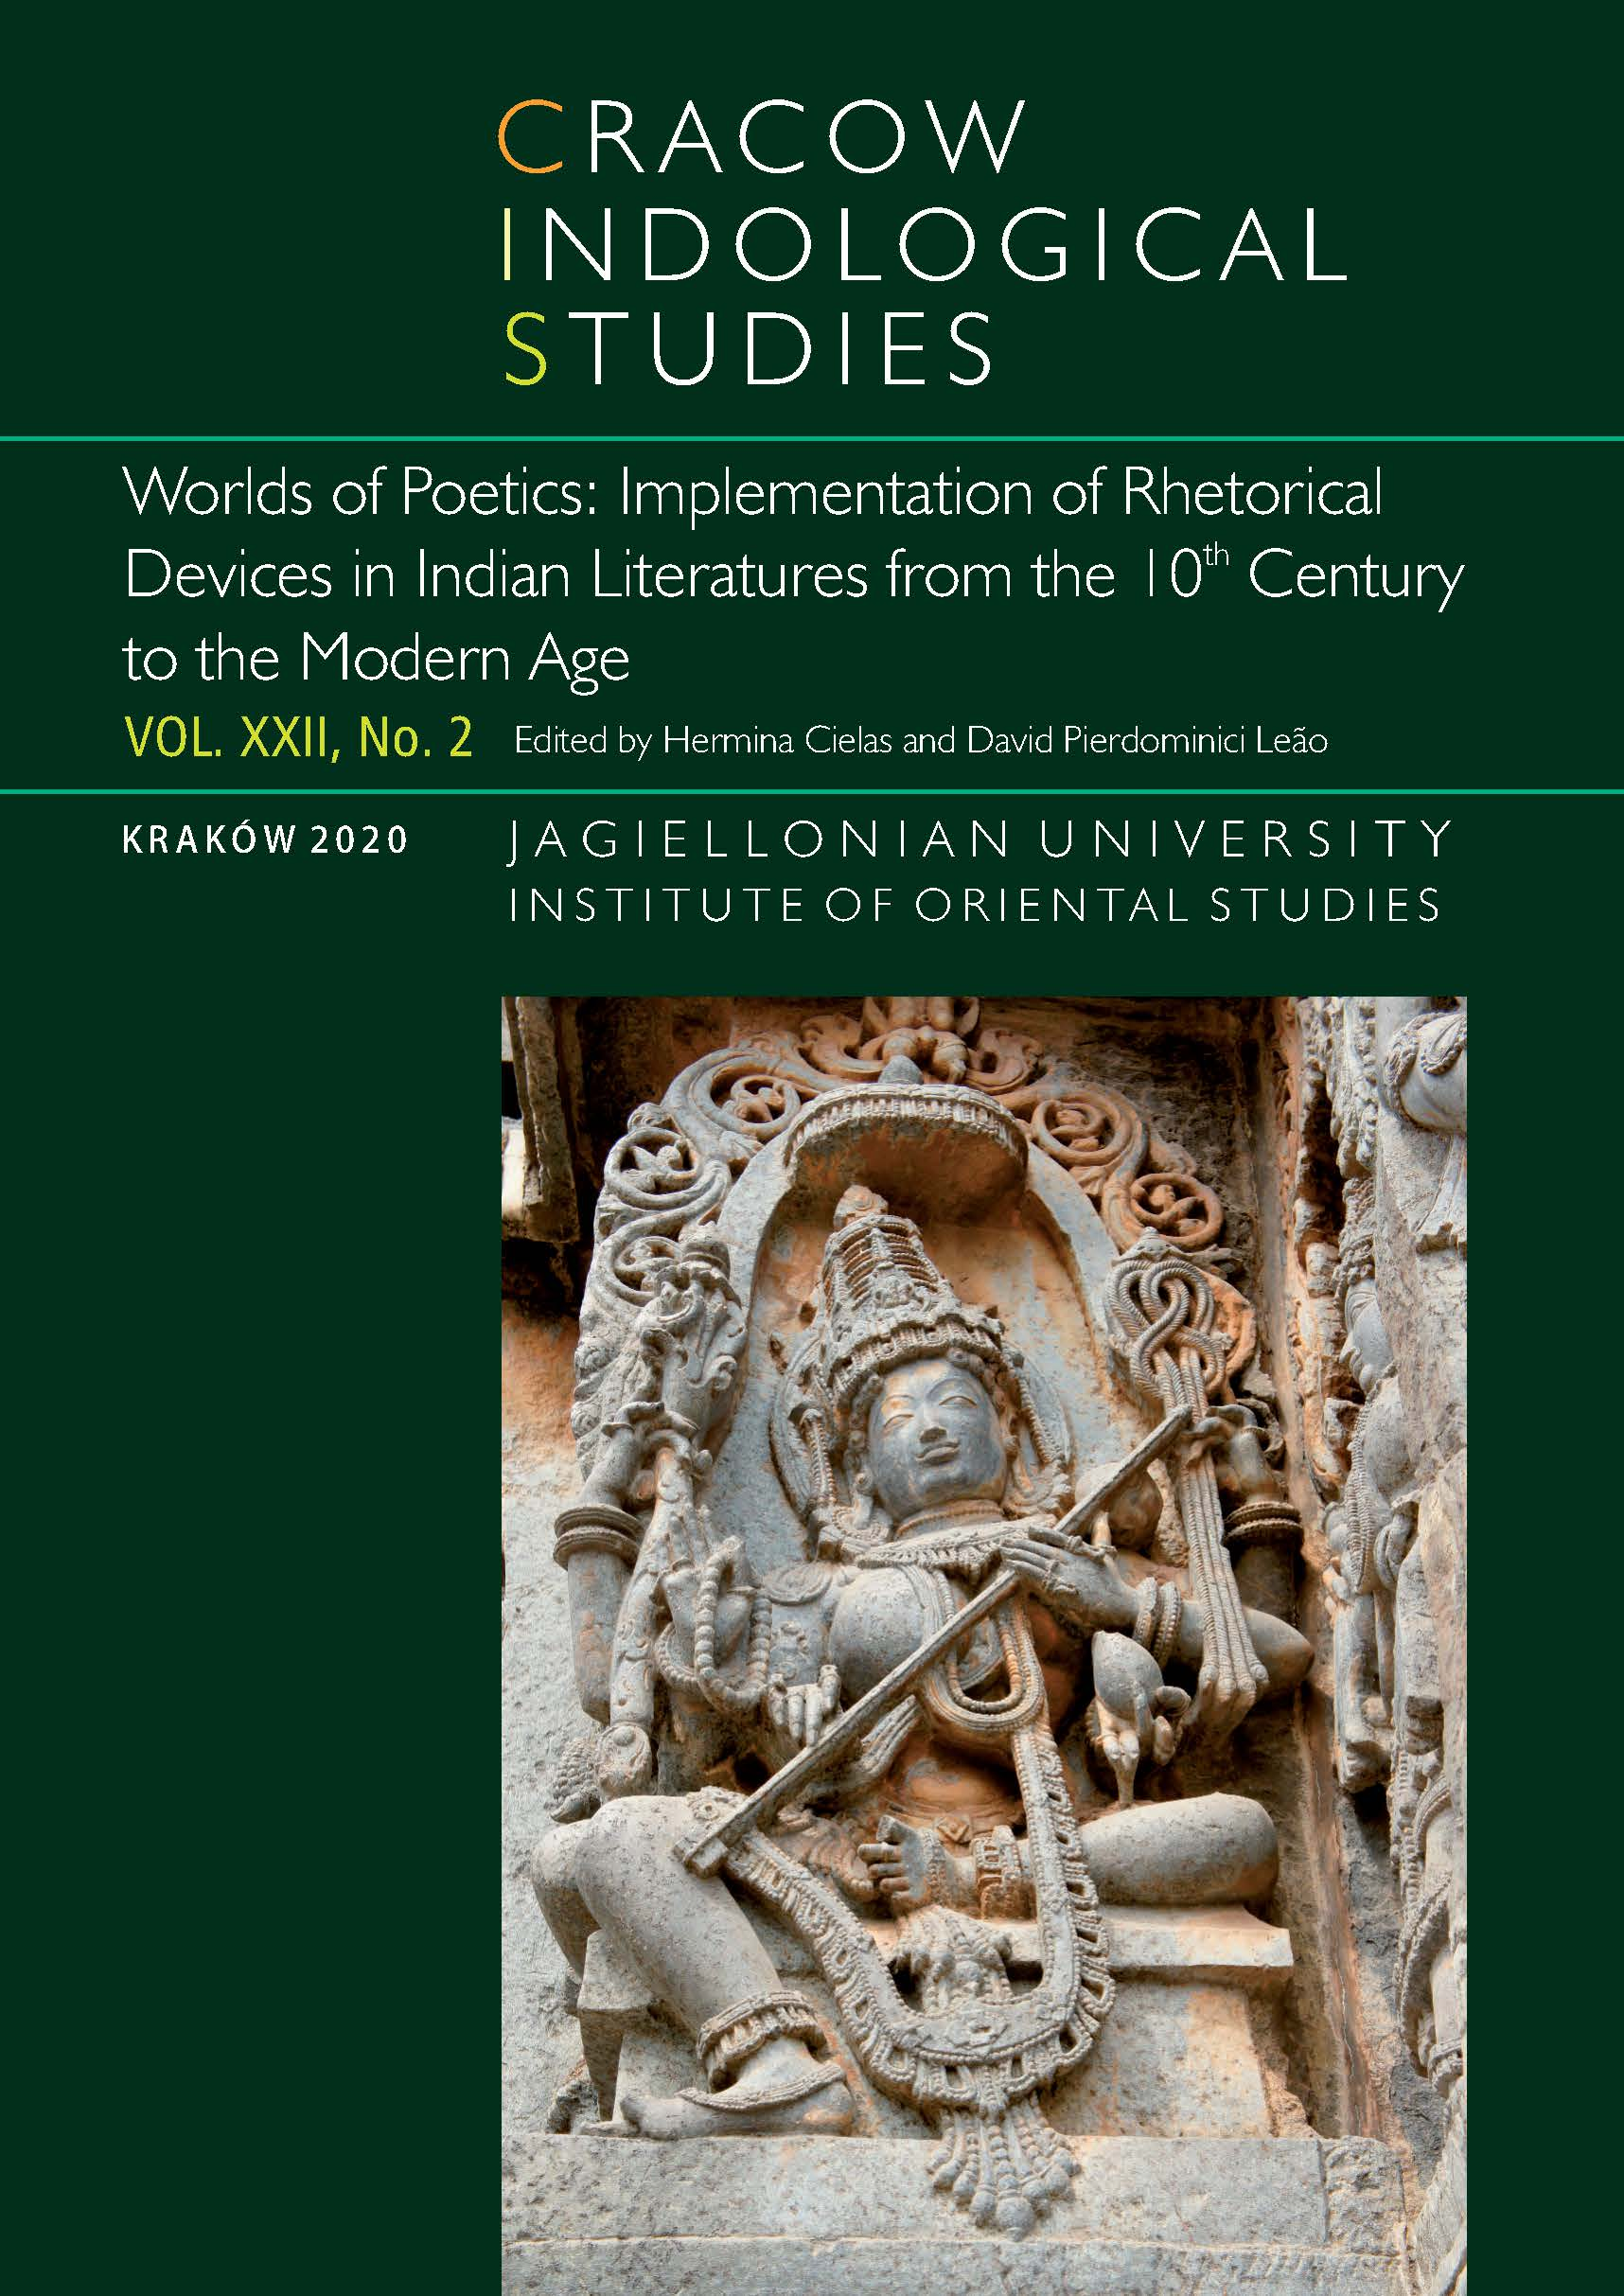 View Vol. 22 No. 2 (2020): Worlds of Poetics: Implementation of Rhetorical Devices in Indian Literatures from the 10th Century to the Modern Age